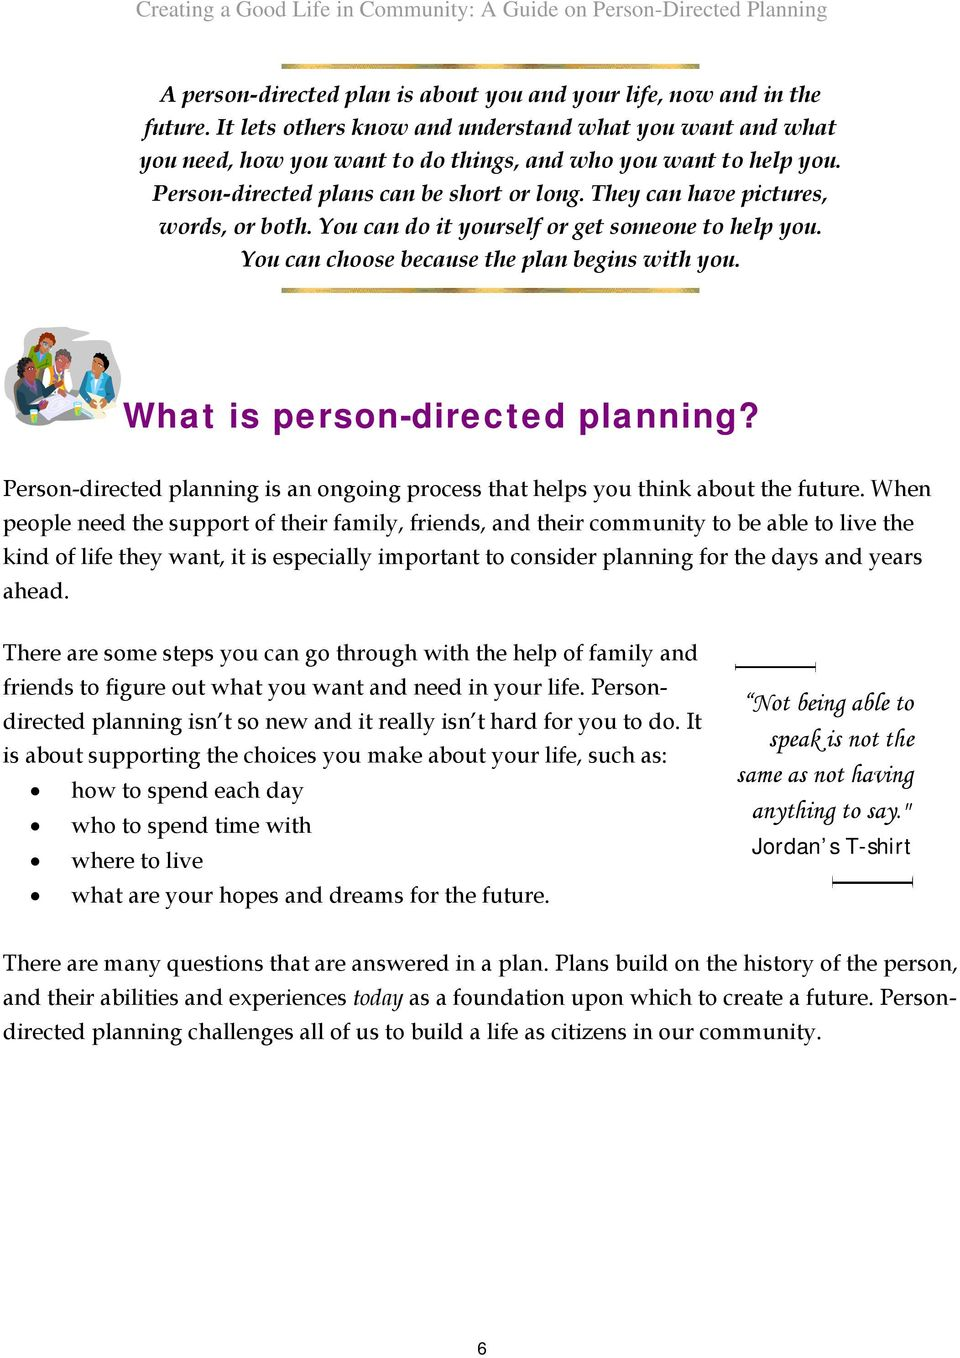 What is person-directed planning? Person-directed planning is an ongoing process that helps you think about the future.